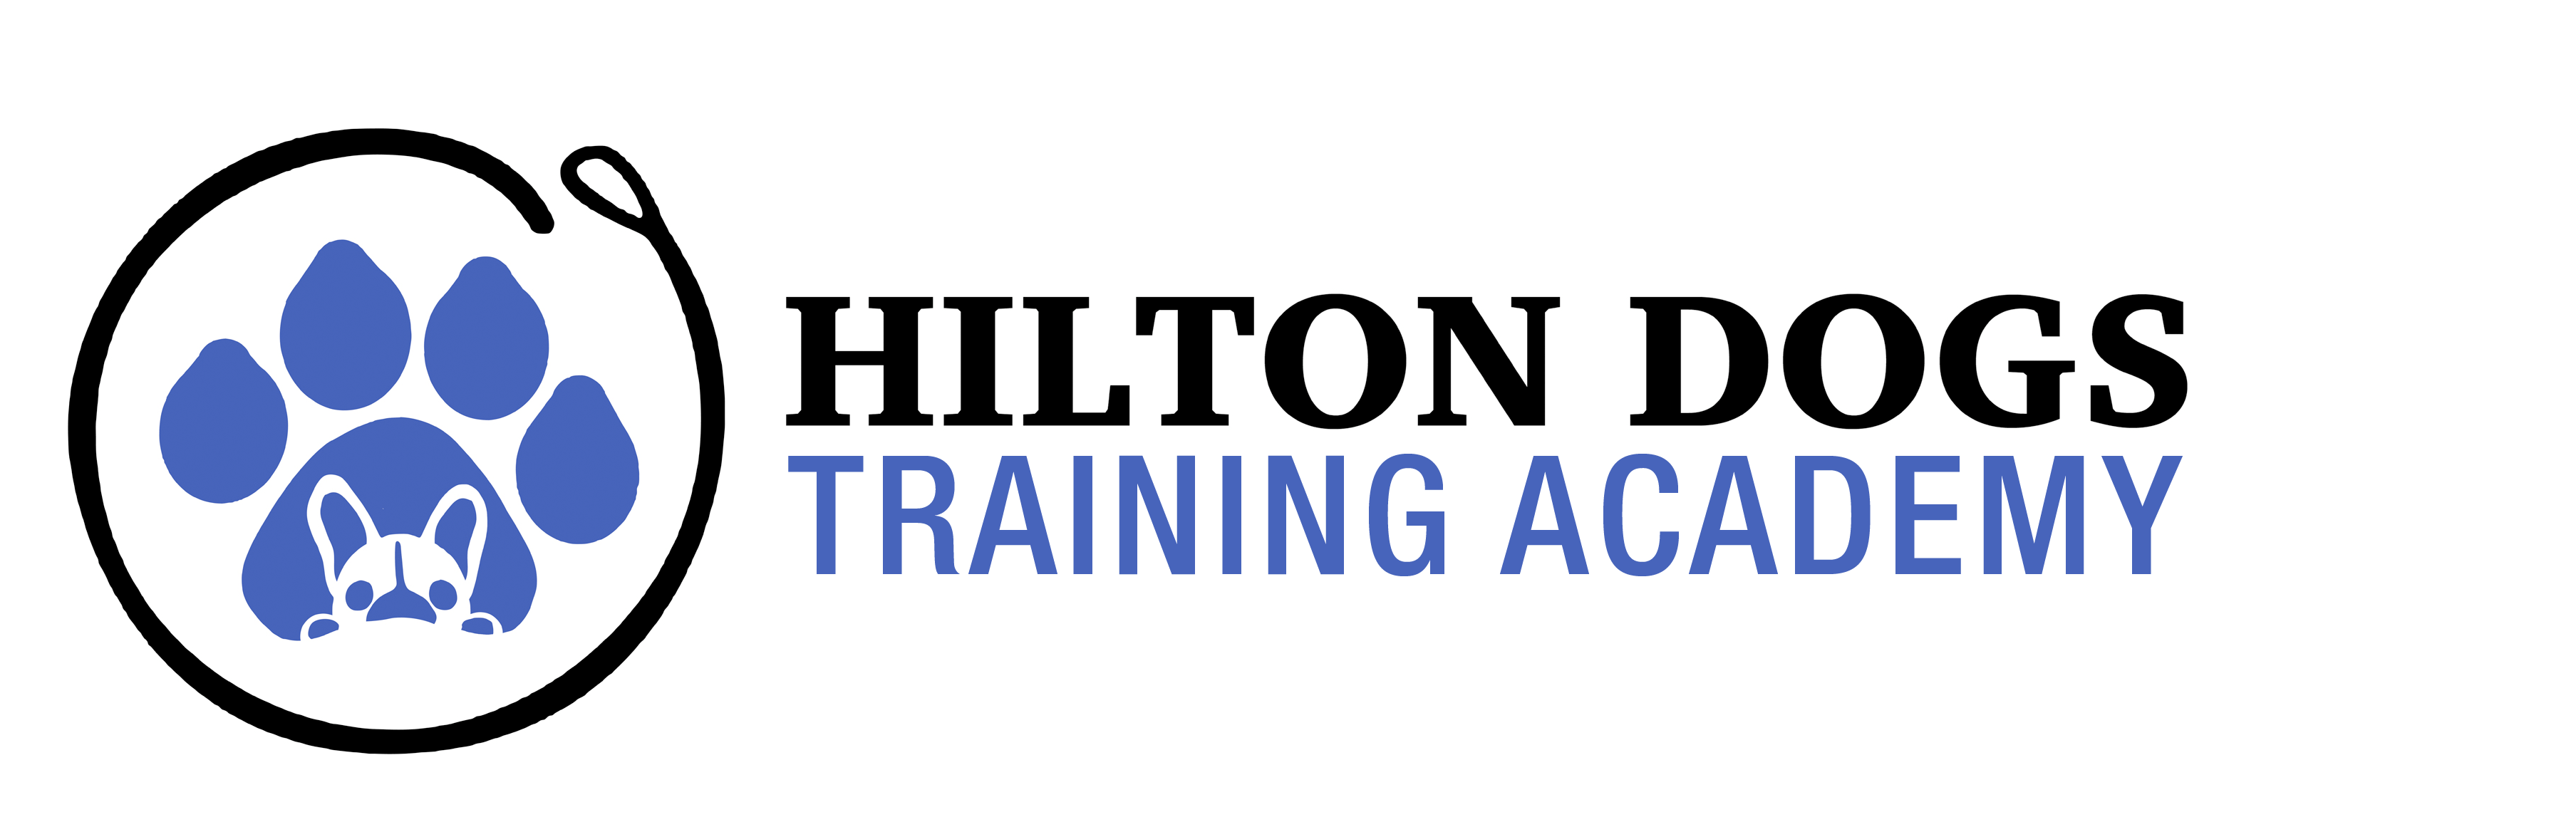 Hilton Dogs Training Academy